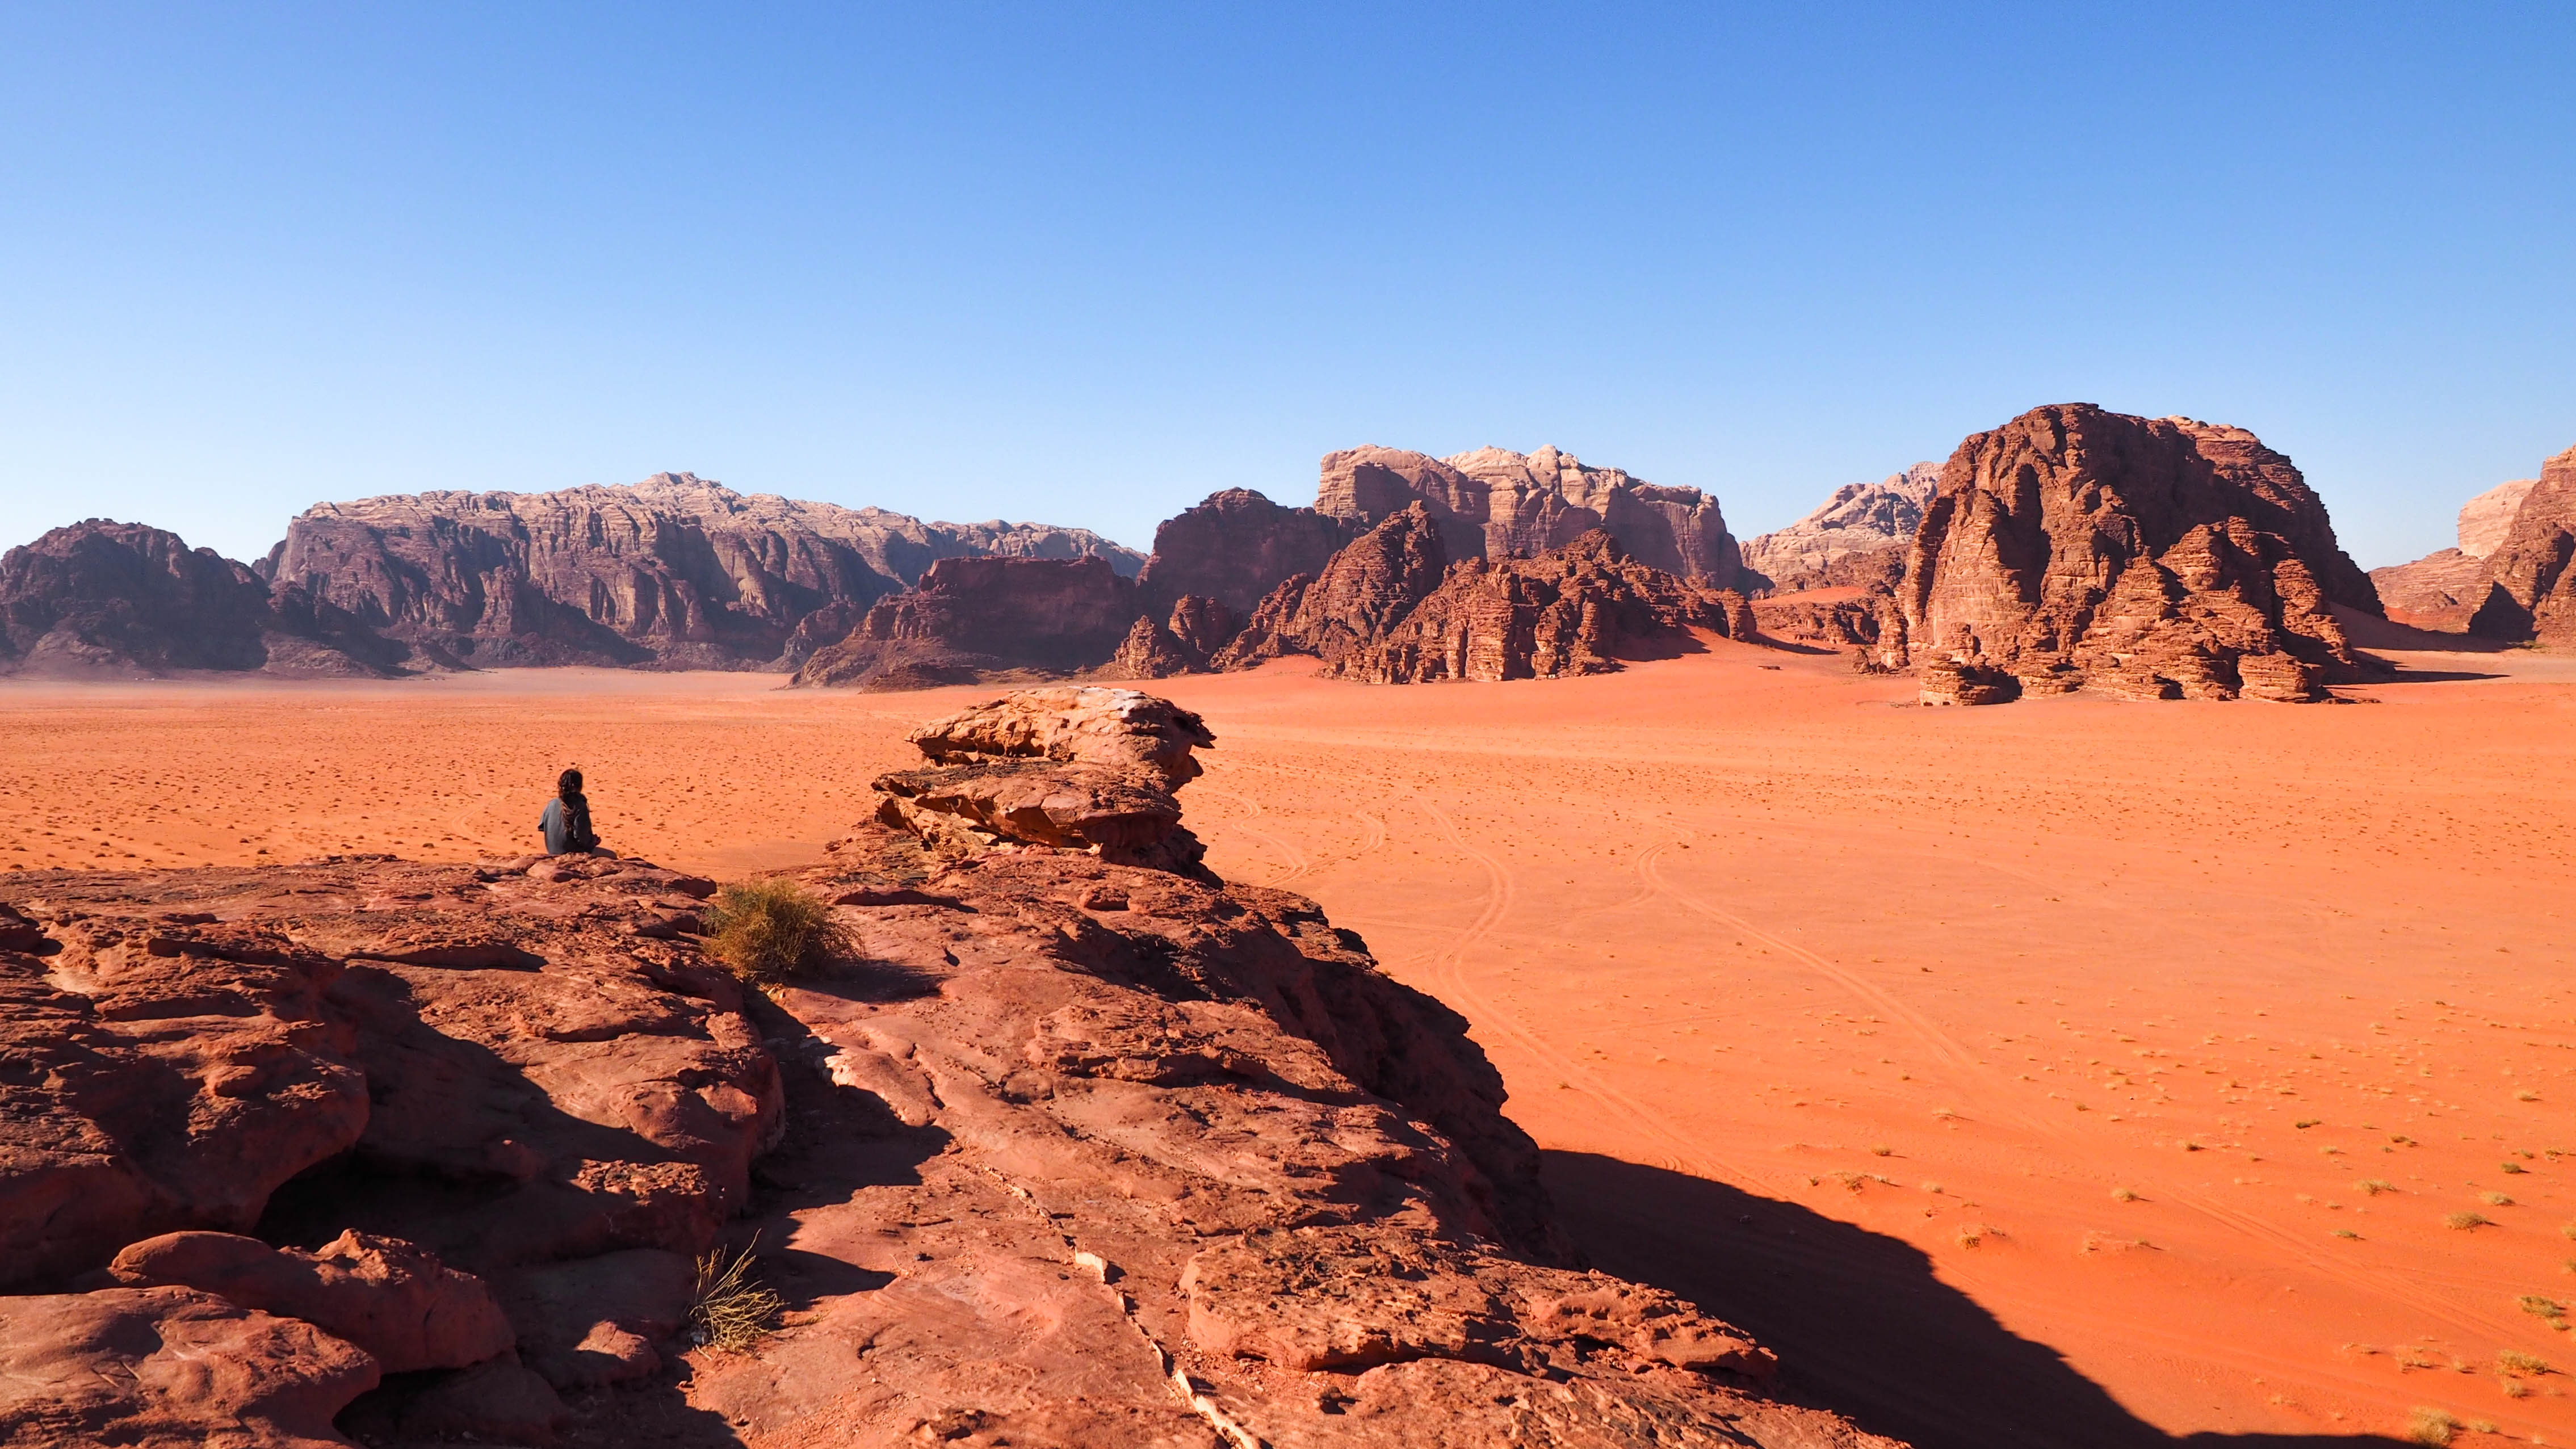 Cute Country Wallpaper Overnight In Wadi Rum Floating In The Dead Sea